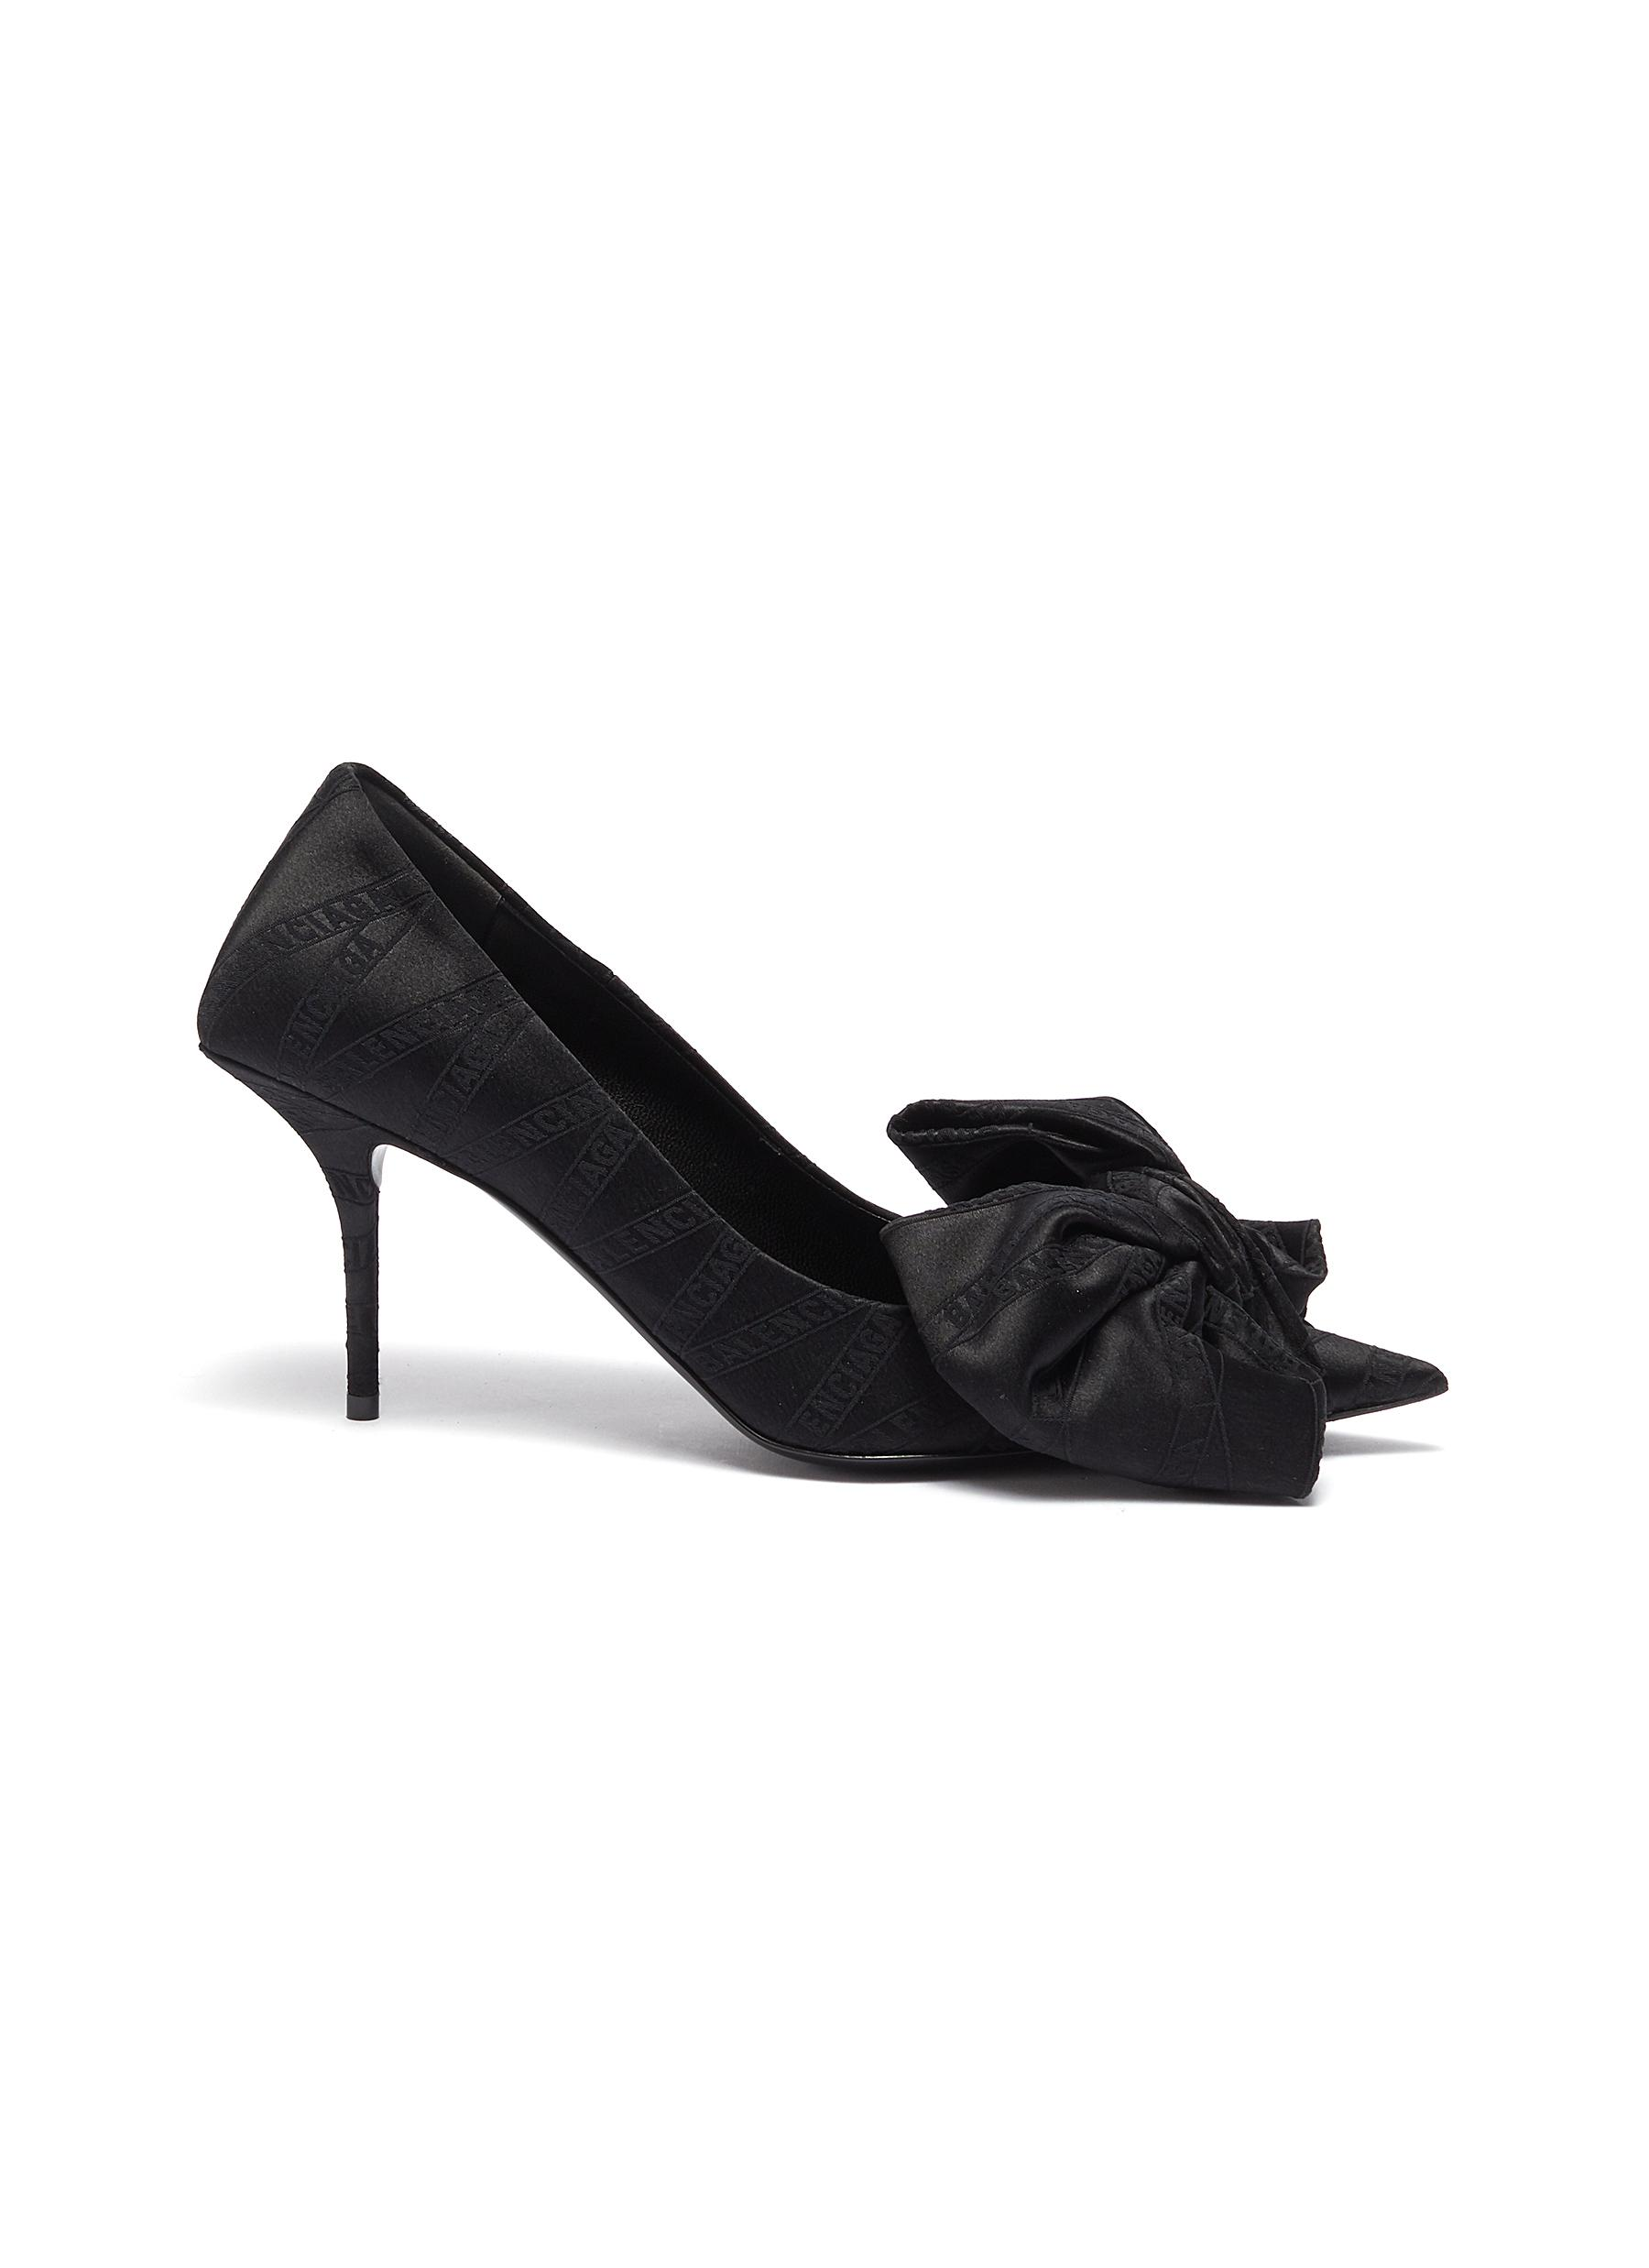 Square Knife Bow moniker jacquard pumps by Balenciaga